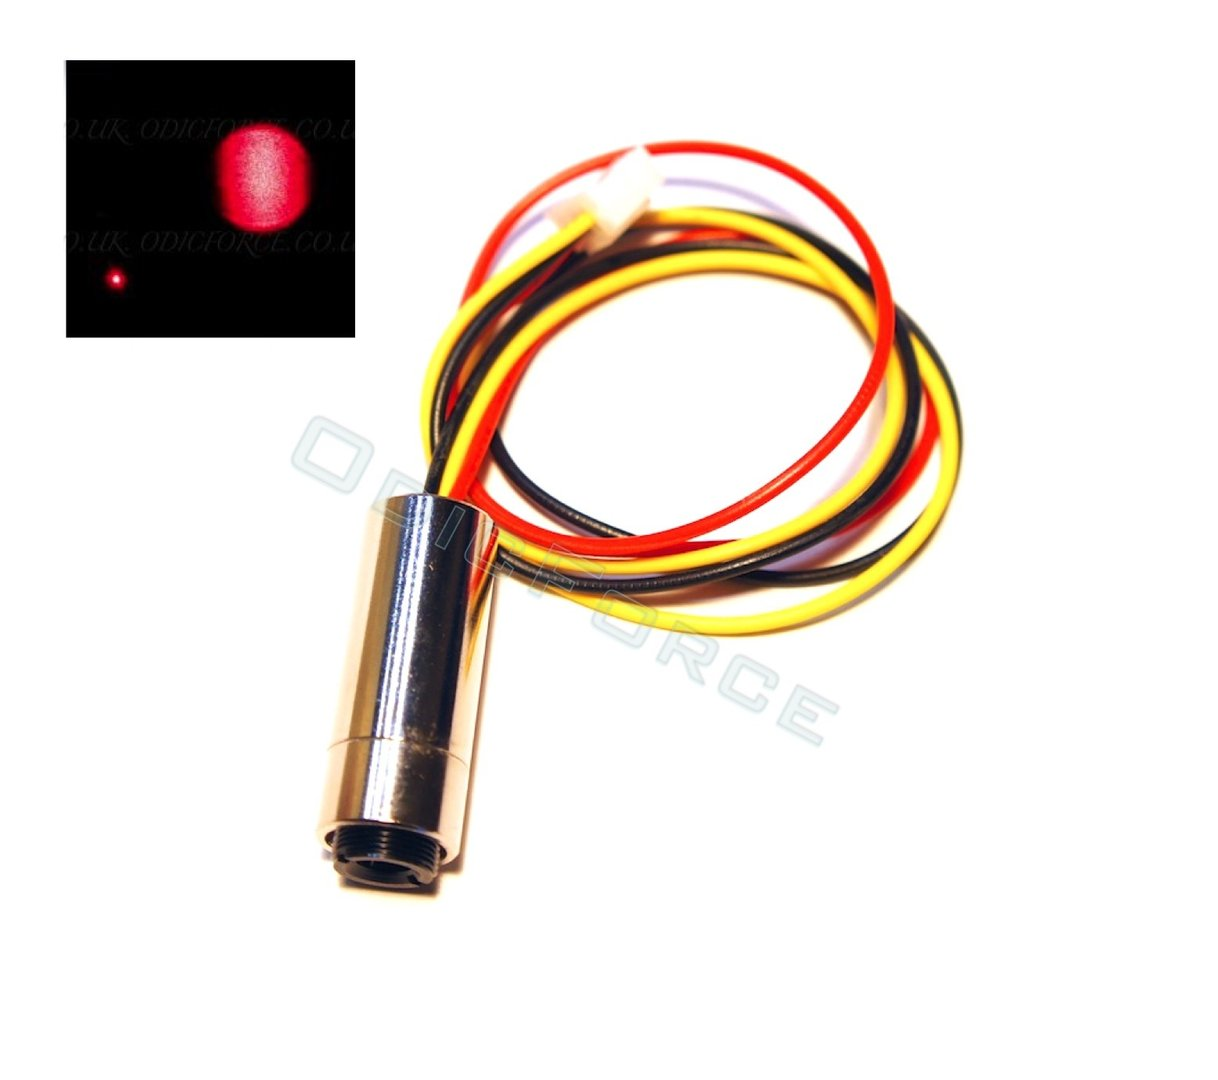 3-5mW Focusing Red (650nm) Laser Module (12mm) with TTL Driver Class 3R